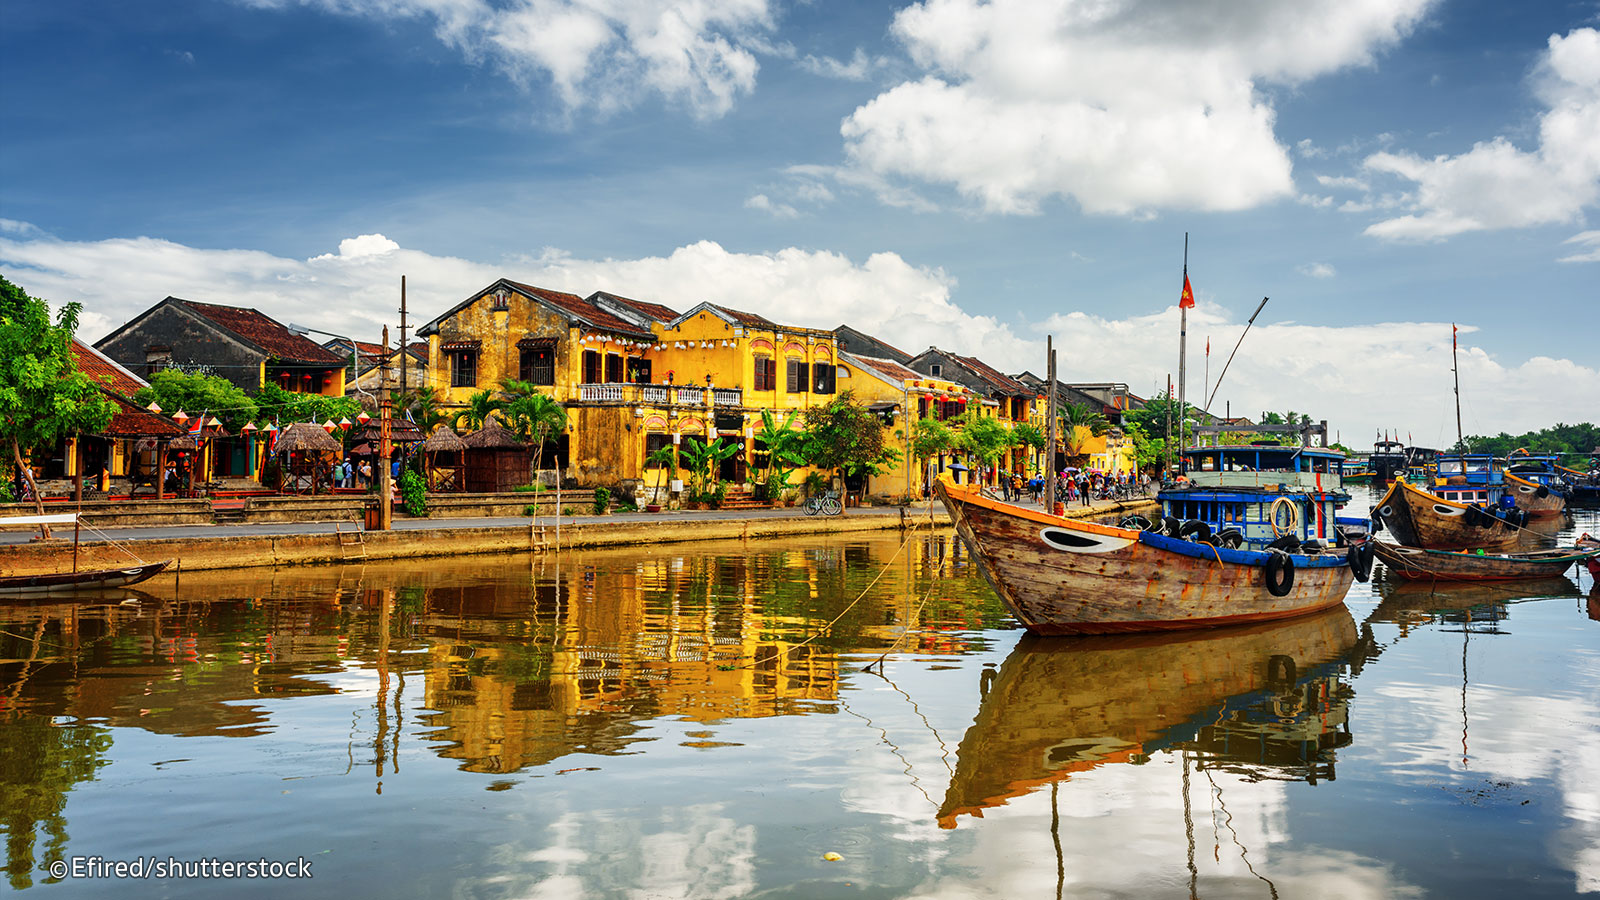 Tra Kieu Hoi An, Hoi An Travel Guide - Everything You Need to Know About Hoi An